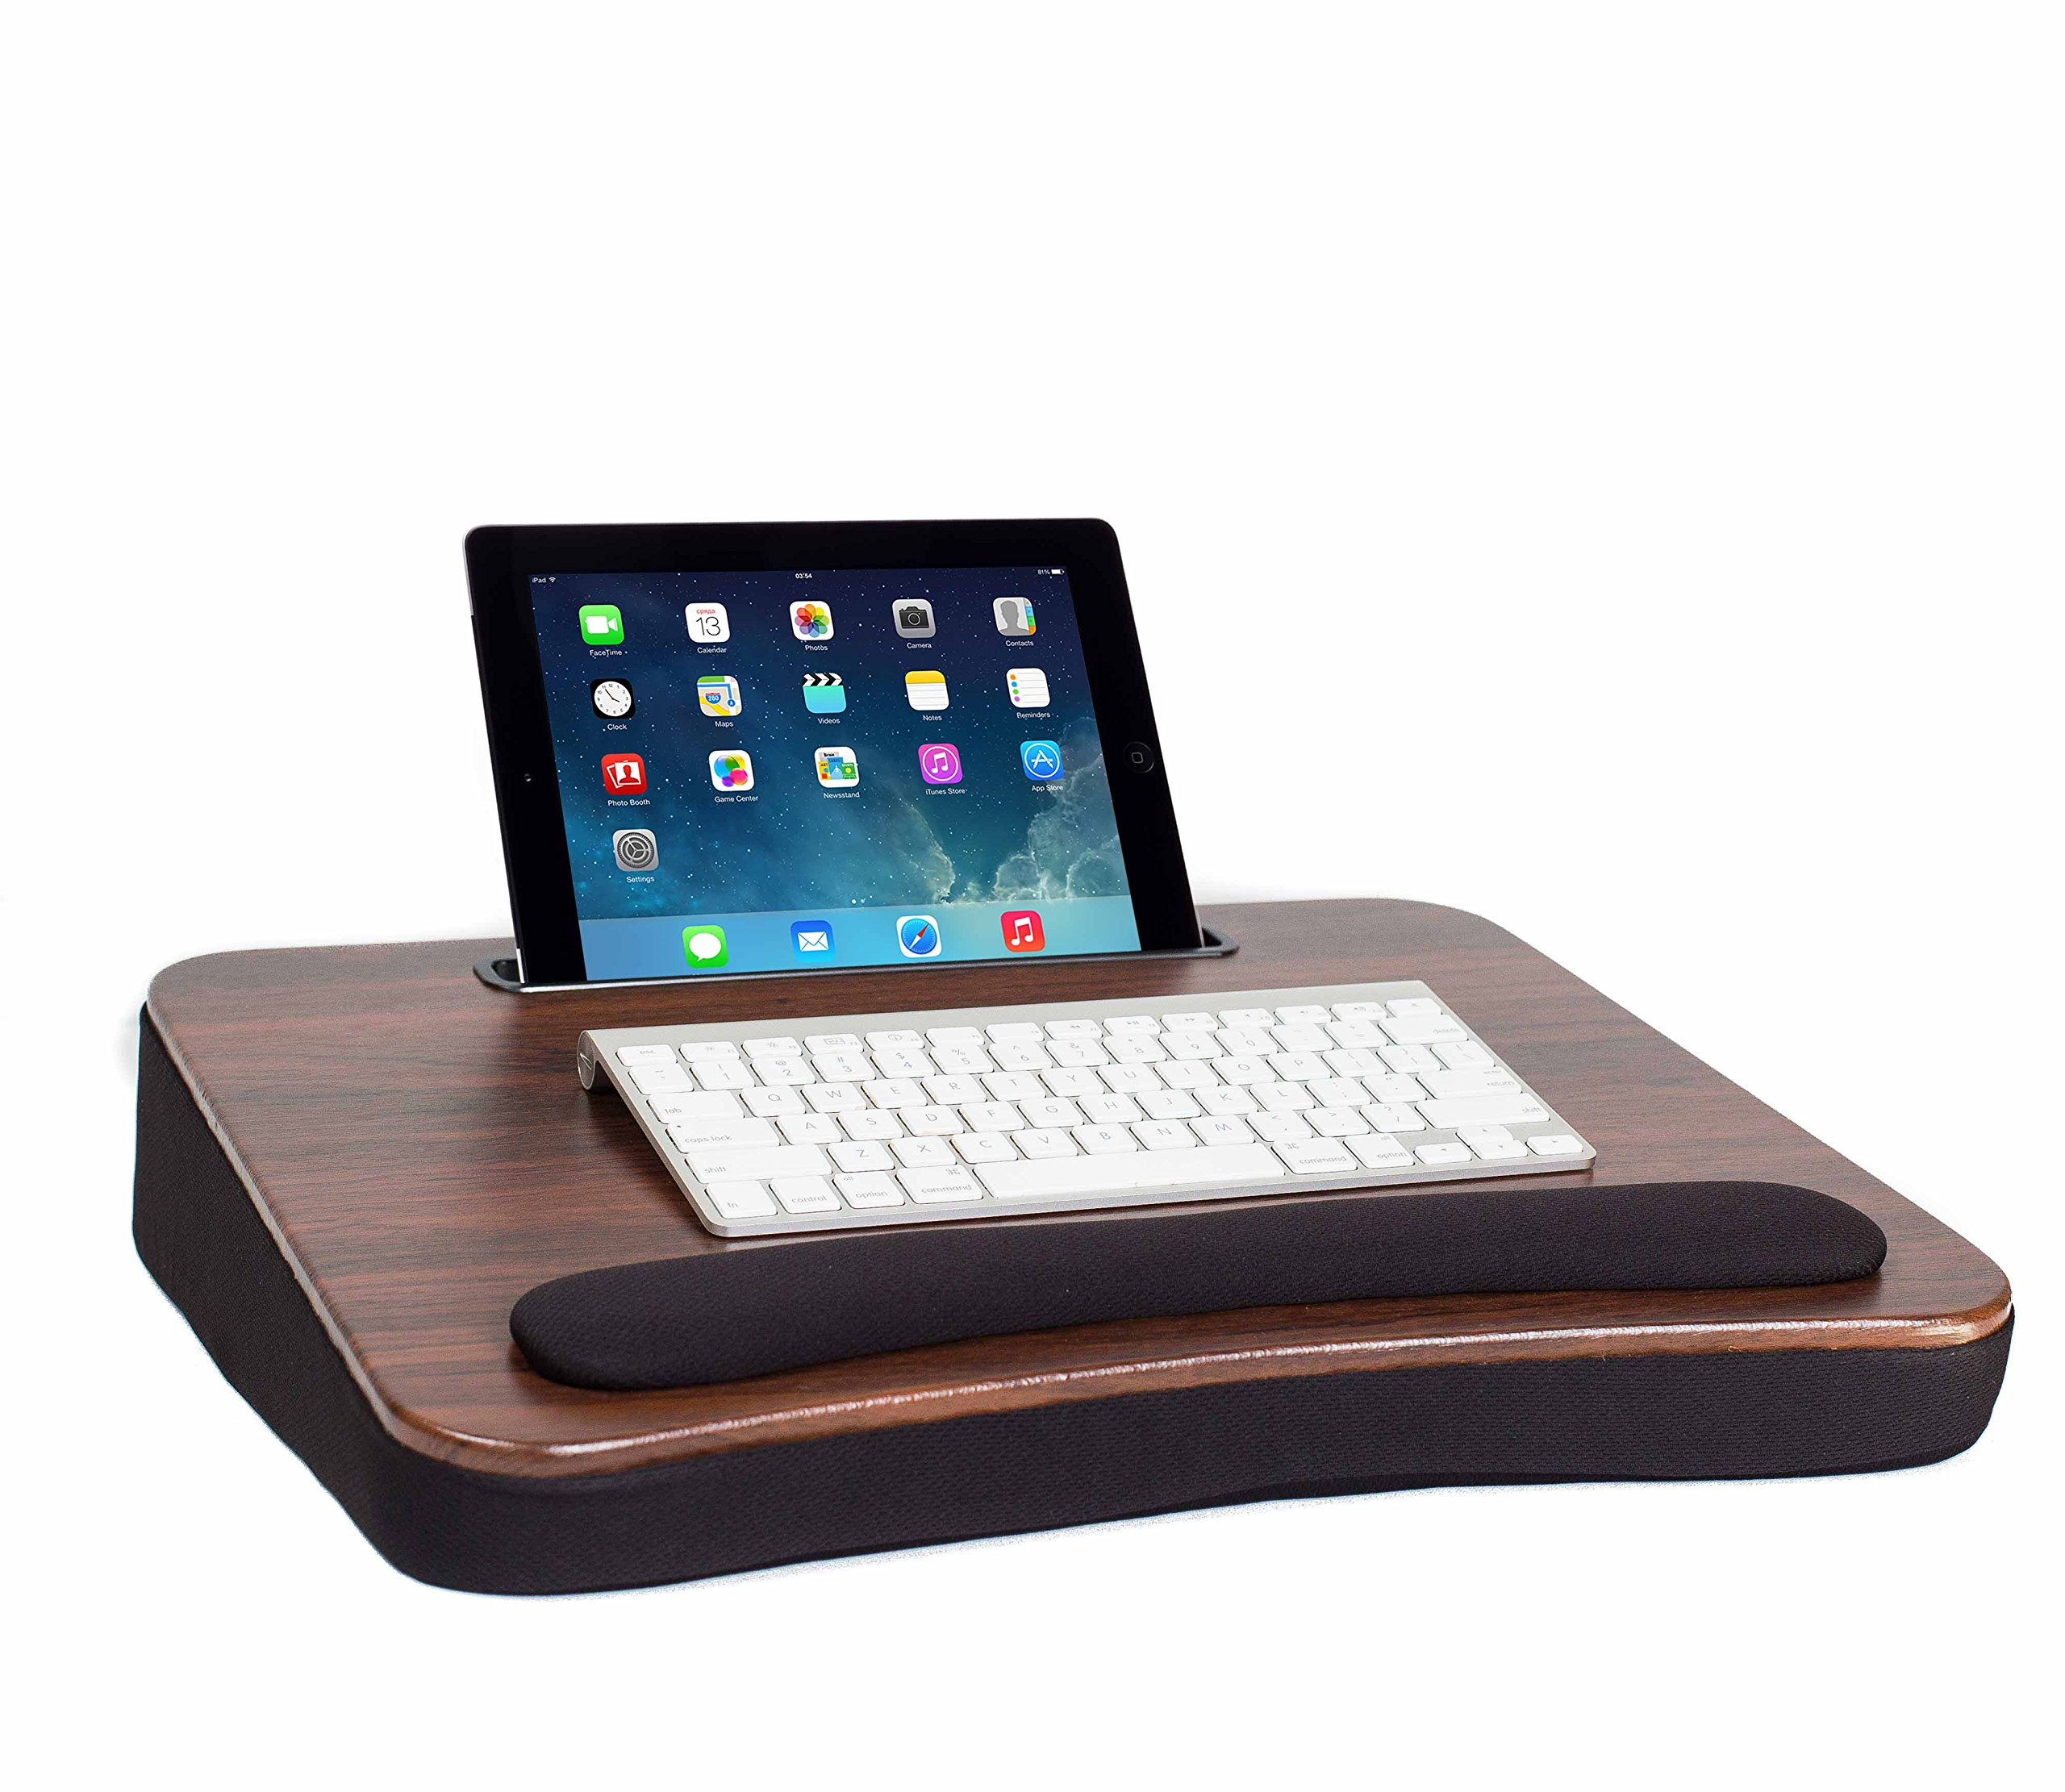 Sofia + Sam All Purpose Memory Foam Lap Desk (Wood Top) with Tablet Slot | Supports Laptops Up To 17 Inches